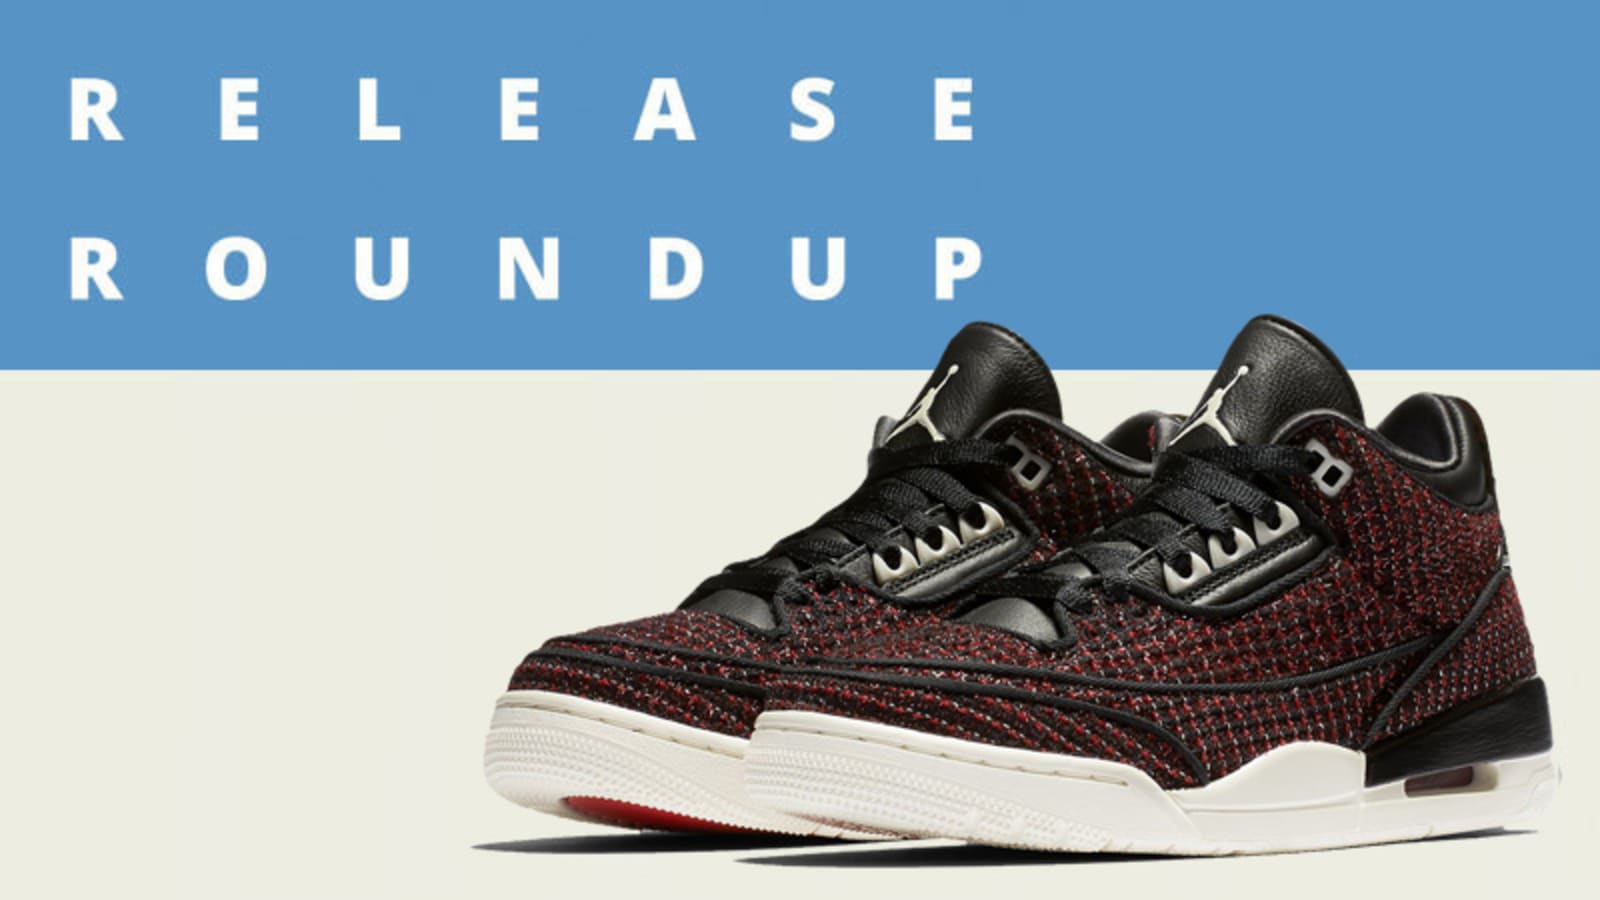 e8520cd87 The latest week of Release Roundup kicks off with two Nike LeBron James  signature models including the release of the coveted Nike Zoom LeBron 3